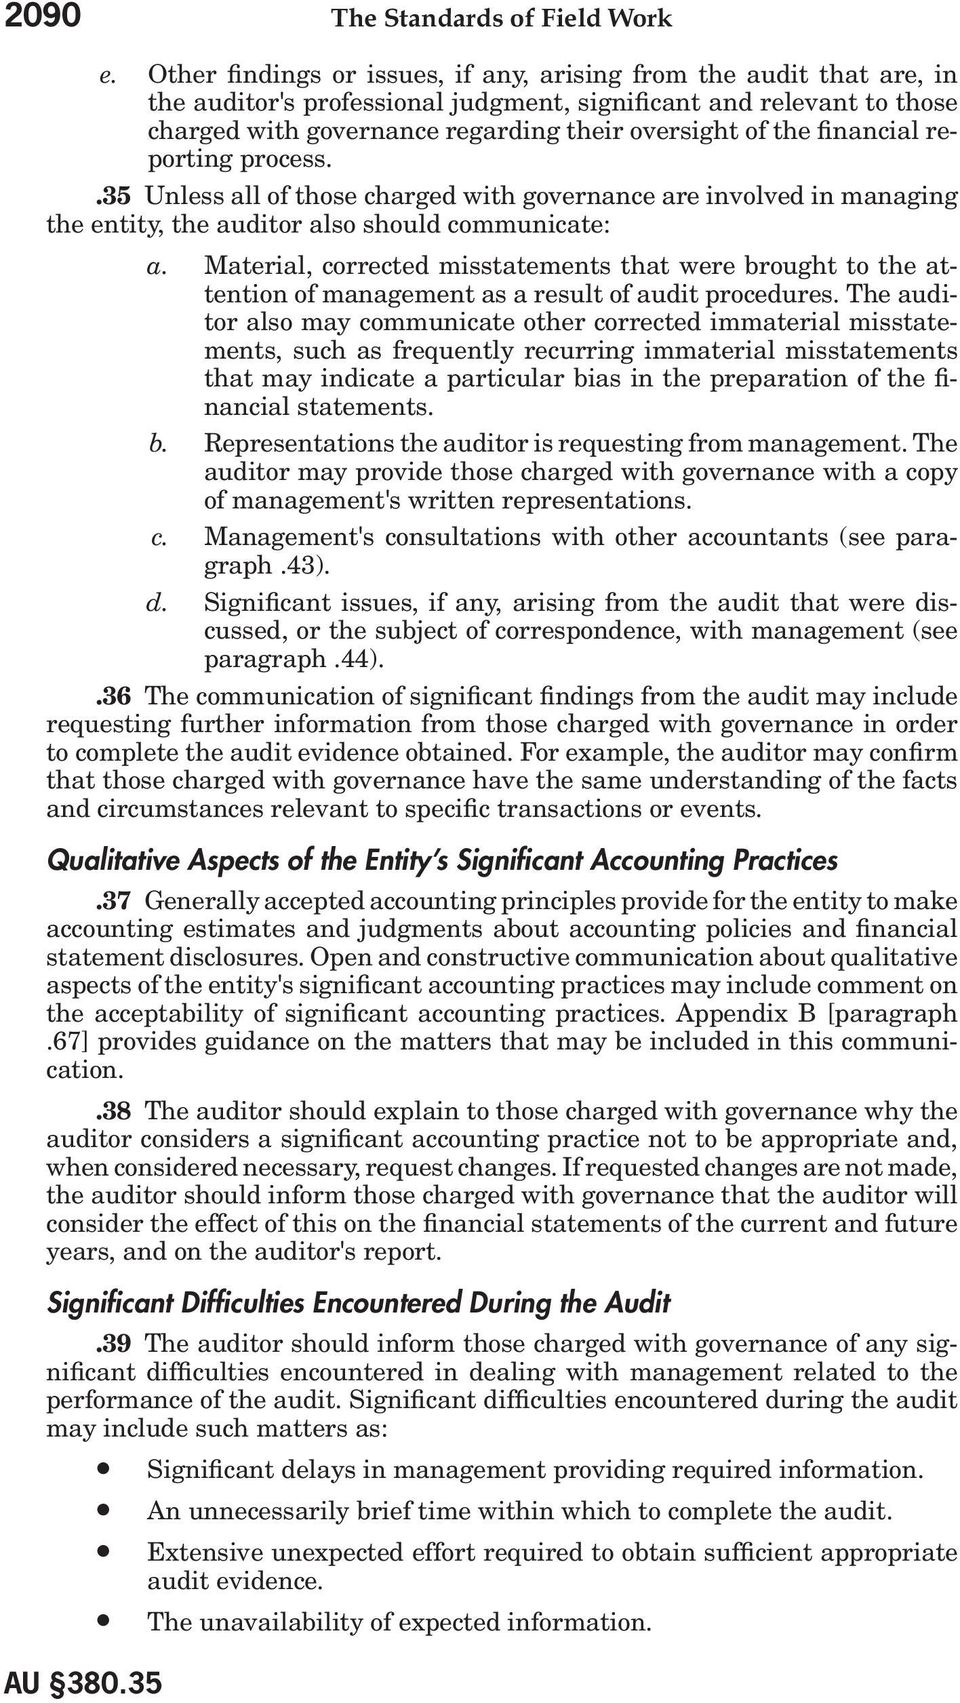 financial reporting process..35 Unless all of those charged with governance are involved in managing the entity, the auditor also should communicate: a.